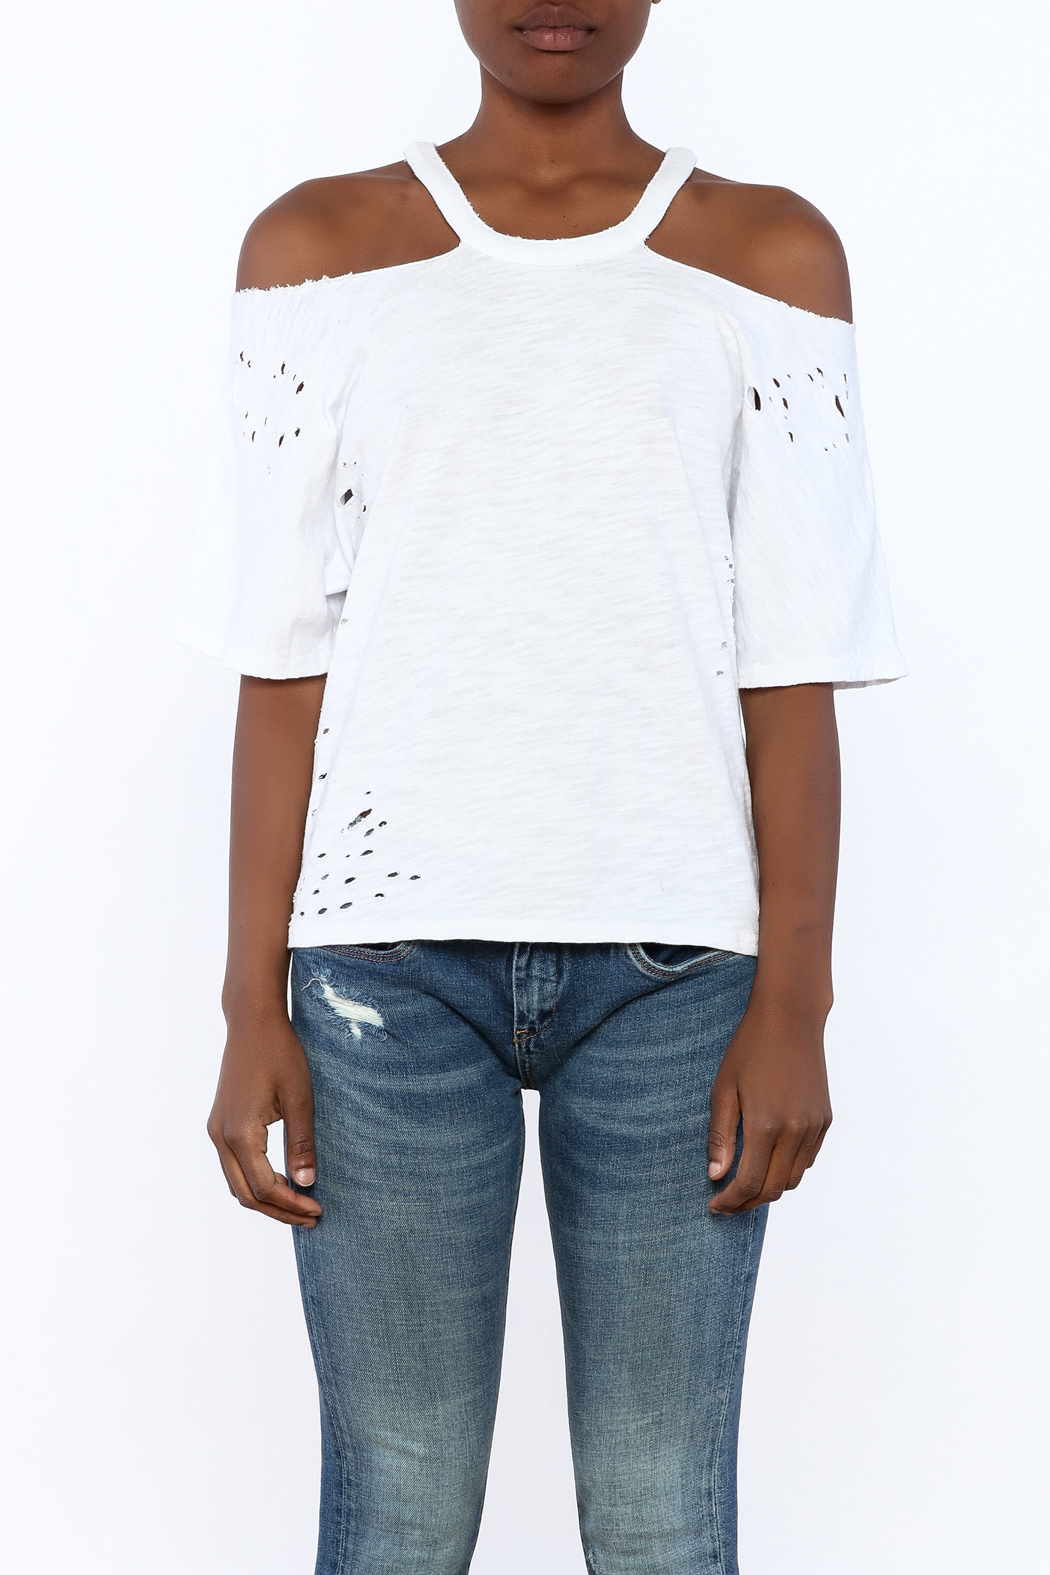 Honey Punch White Distressed Tee - Side Cropped Image